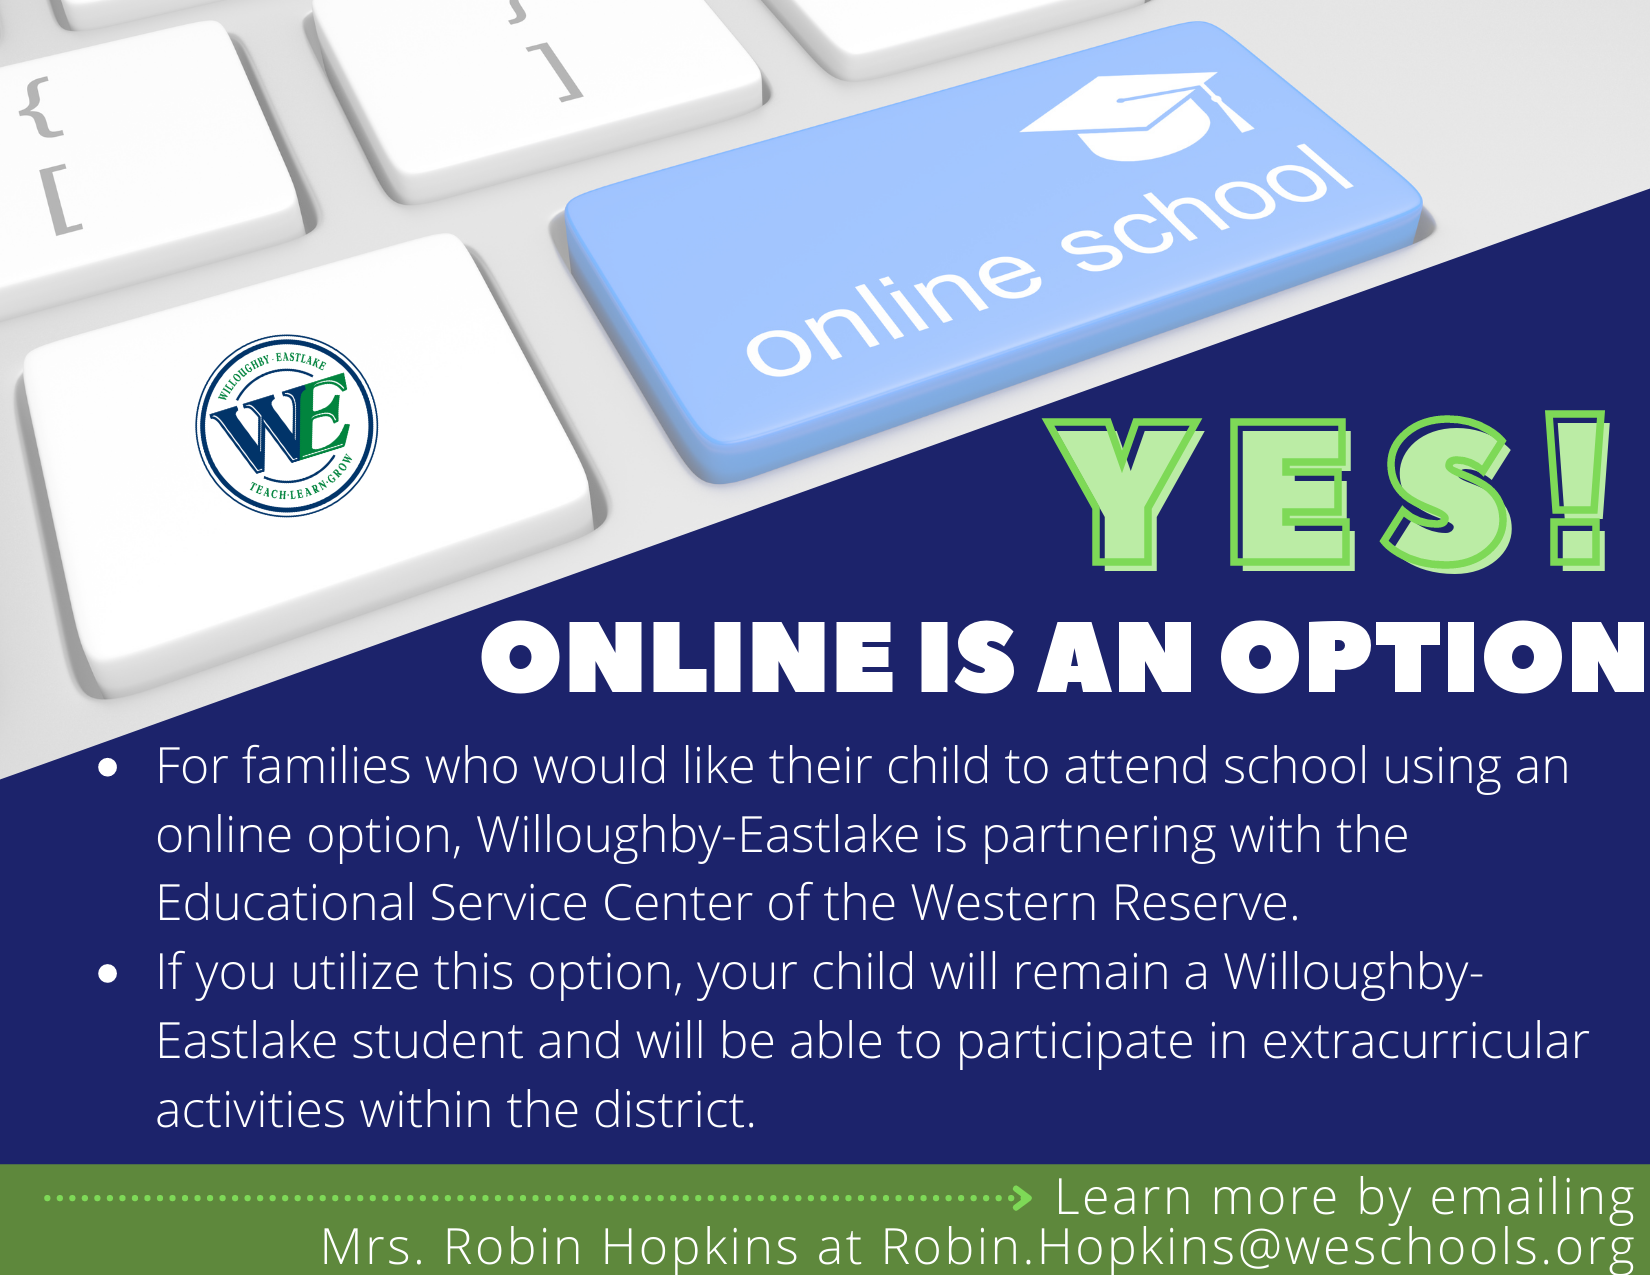 says: Yes Online is an option. For families who would like their child to attend school using an online option, Willoughby-Eastlake is partnering with the ESC of the Western Reserve. If you utilize this opiont, your child will remain a Willoughby-Eastlake student and will be able to participate in extracurricular activities within the district. Learn more by emailing robin.hopkins@weschools.org